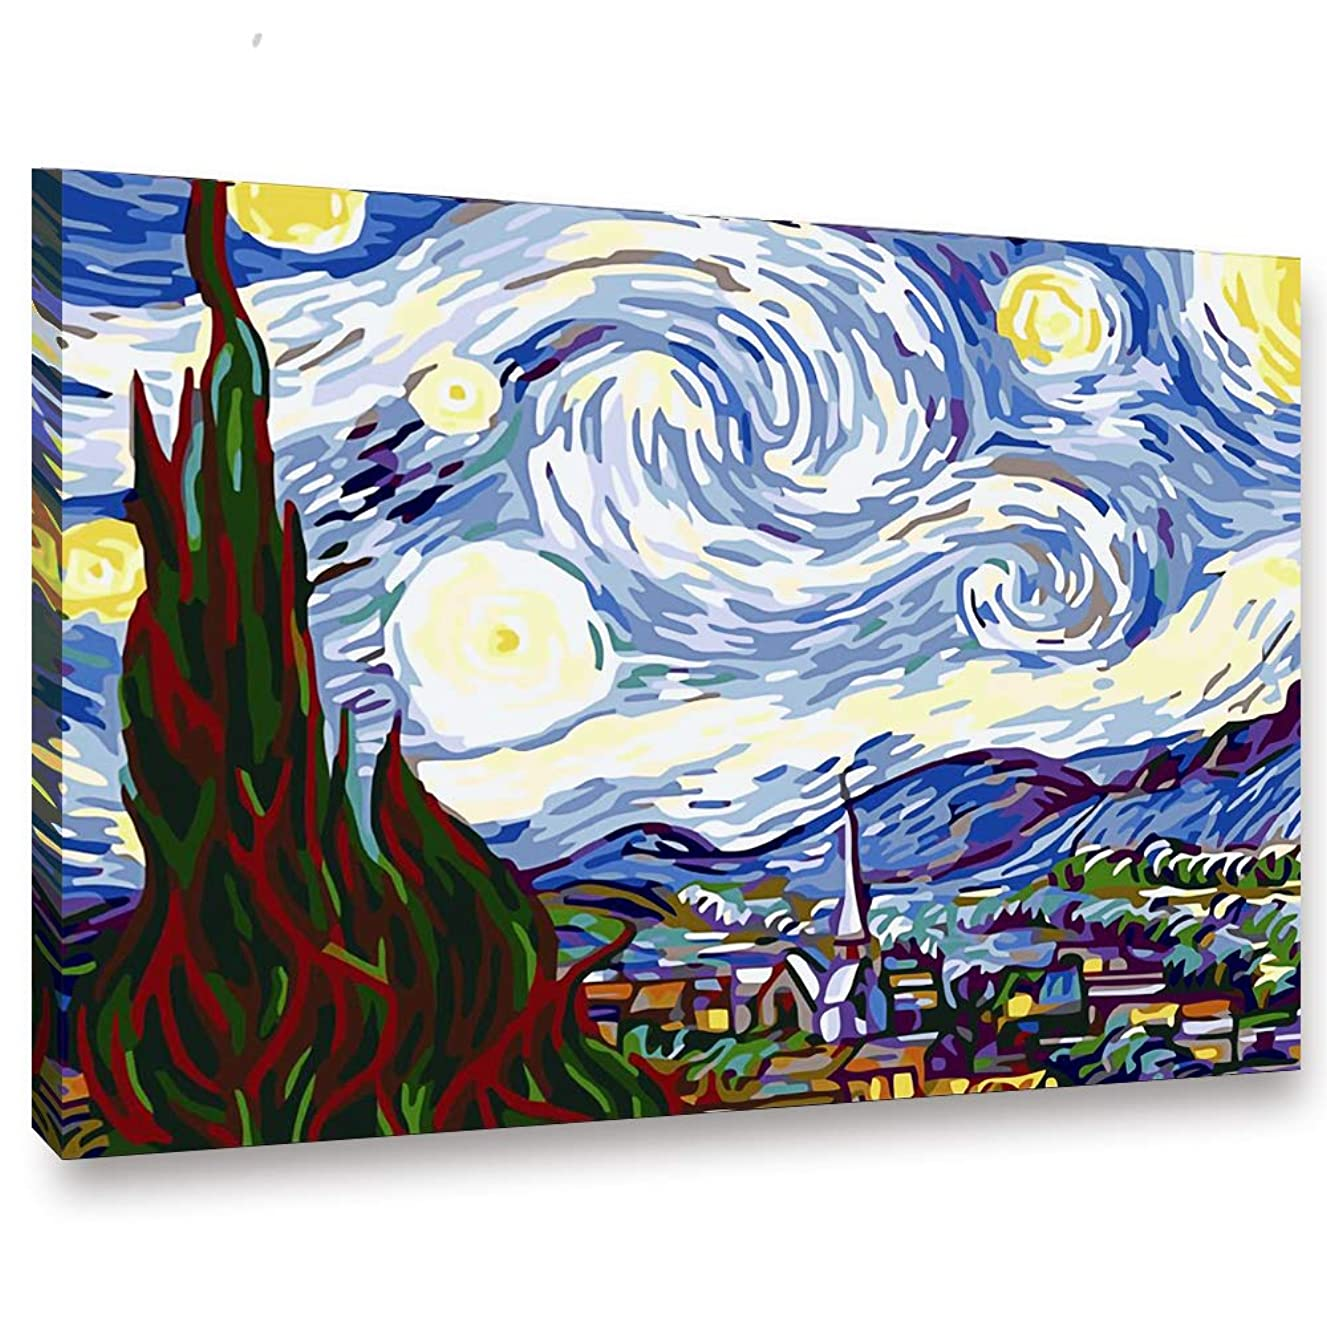 SHUAXIN Paint by Numbers for Adults - DIY Full Set of Assorted Color Oil Painting Kit and Brush Accessories - Van Gogh The Starry Night 16